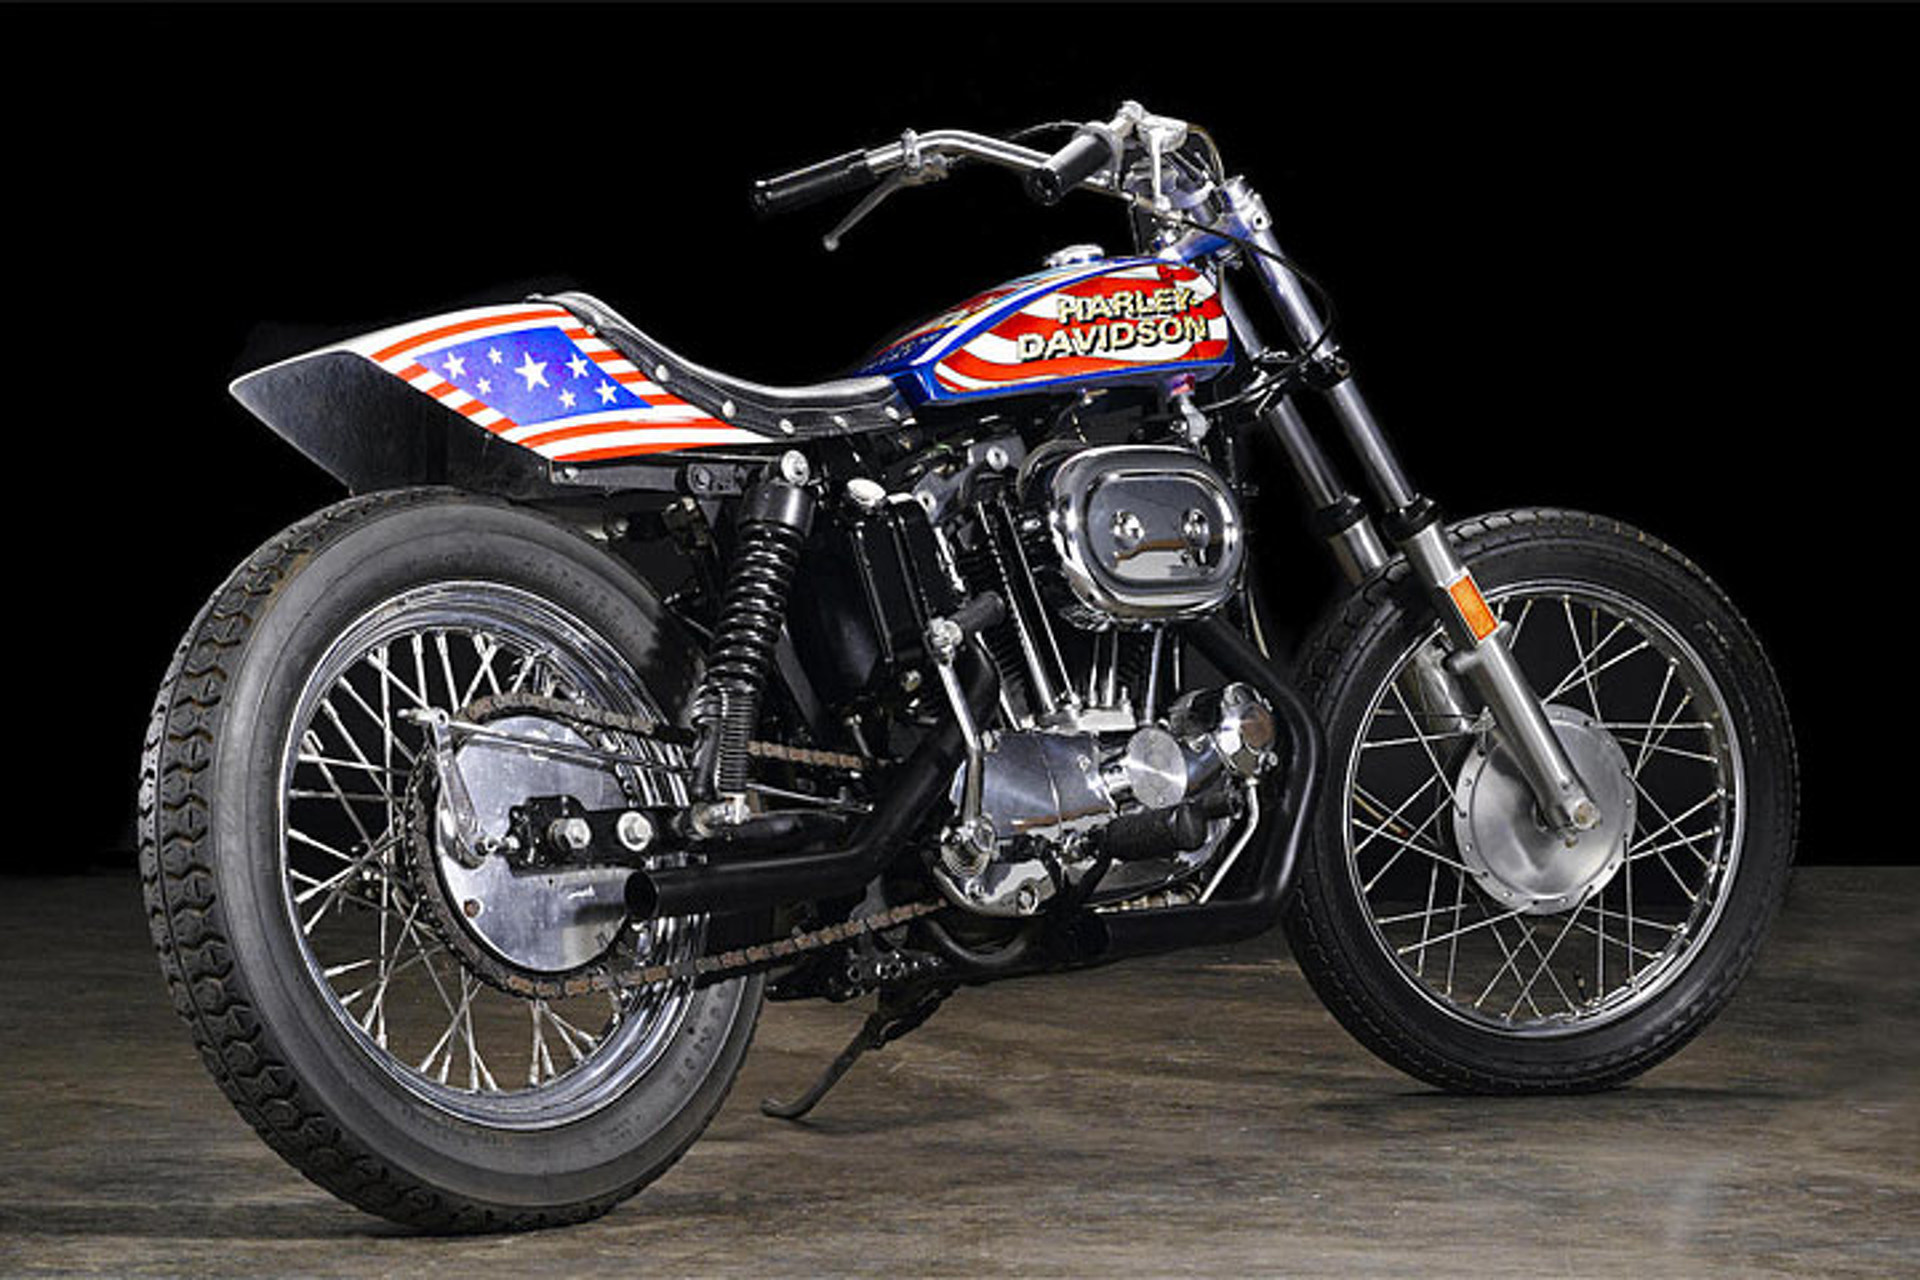 Evel Knievel Motorcycle Heading to Auction—Just Don't Jump It!